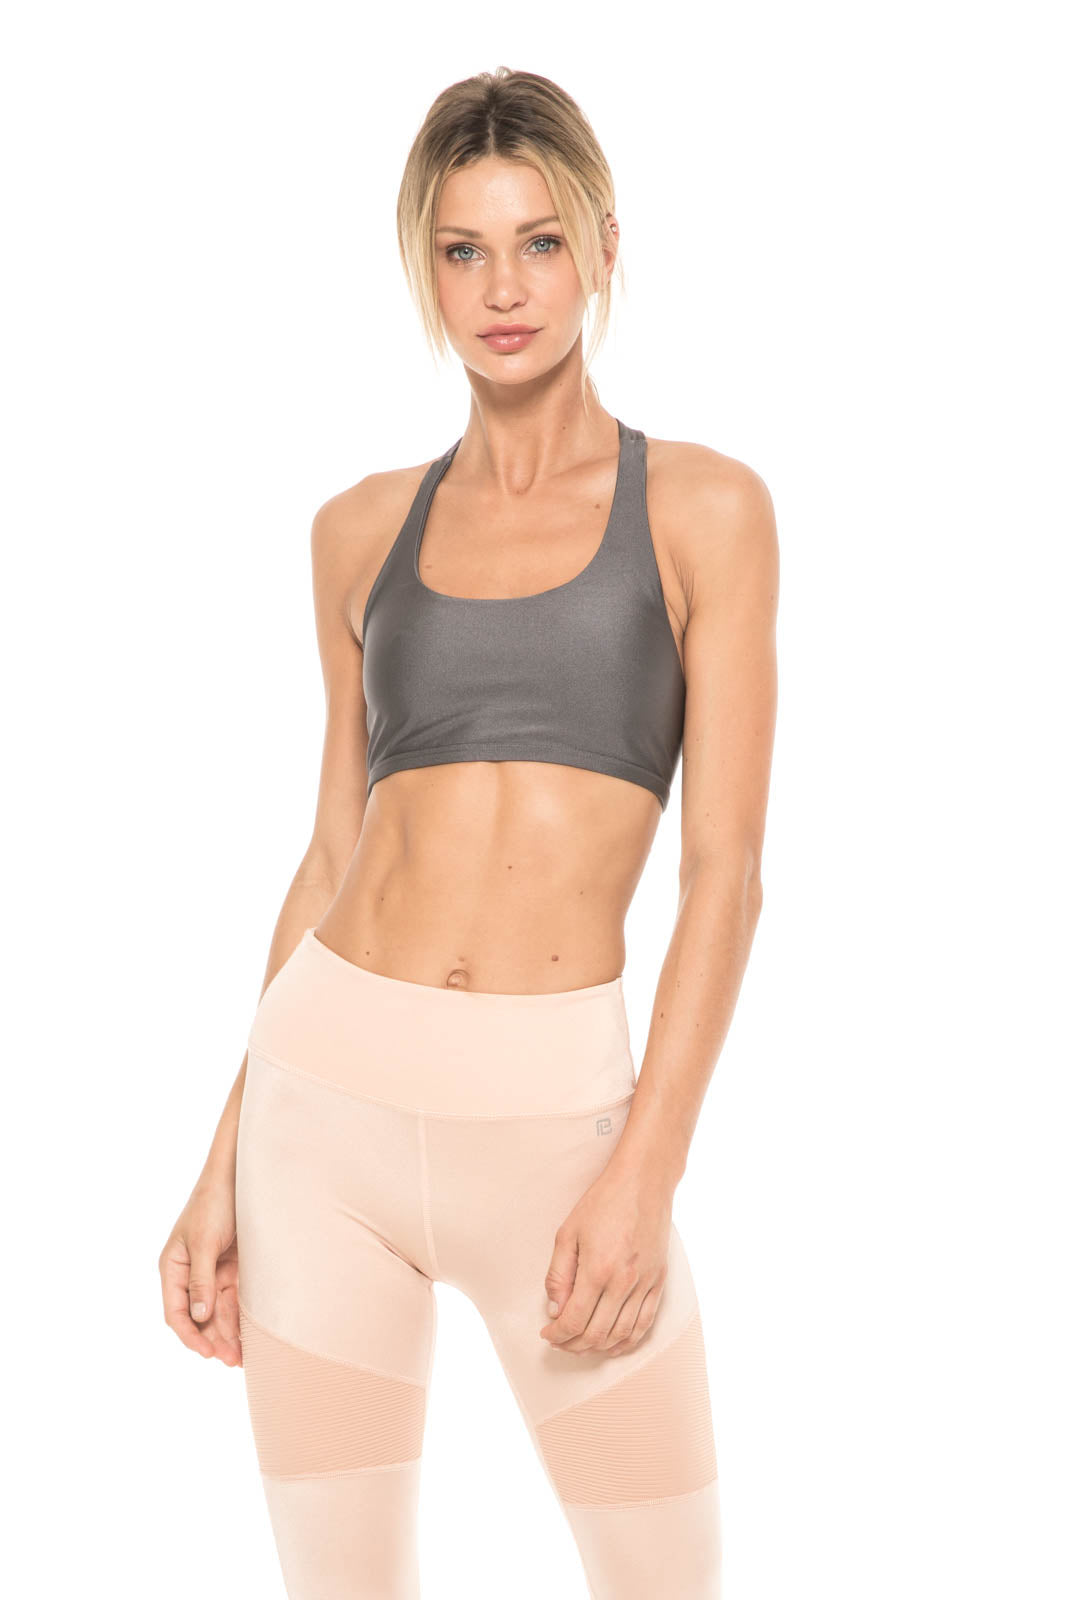 Women - Apparel - Active Wear - Tops:Body Language Sportswear:Kloss Top in Graphite:WKND threads